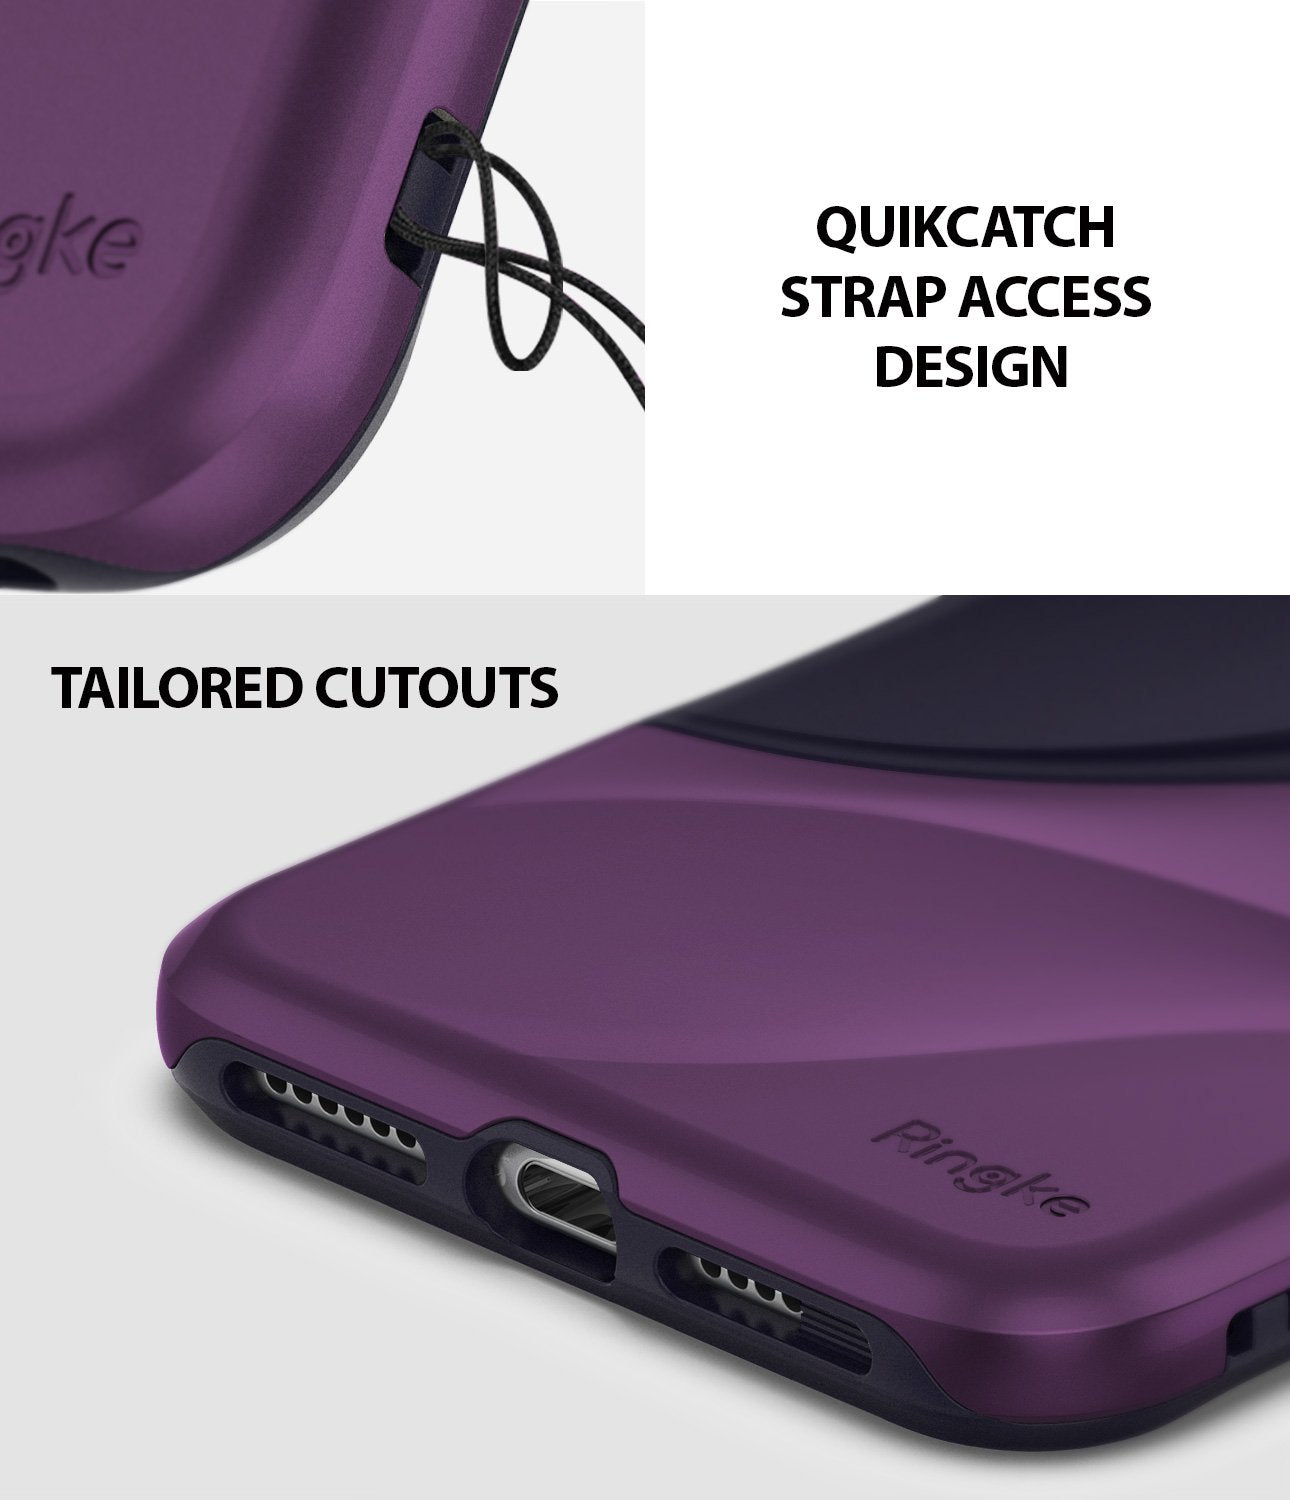 ringke wave for iphone xr case cover quickcatch strap access